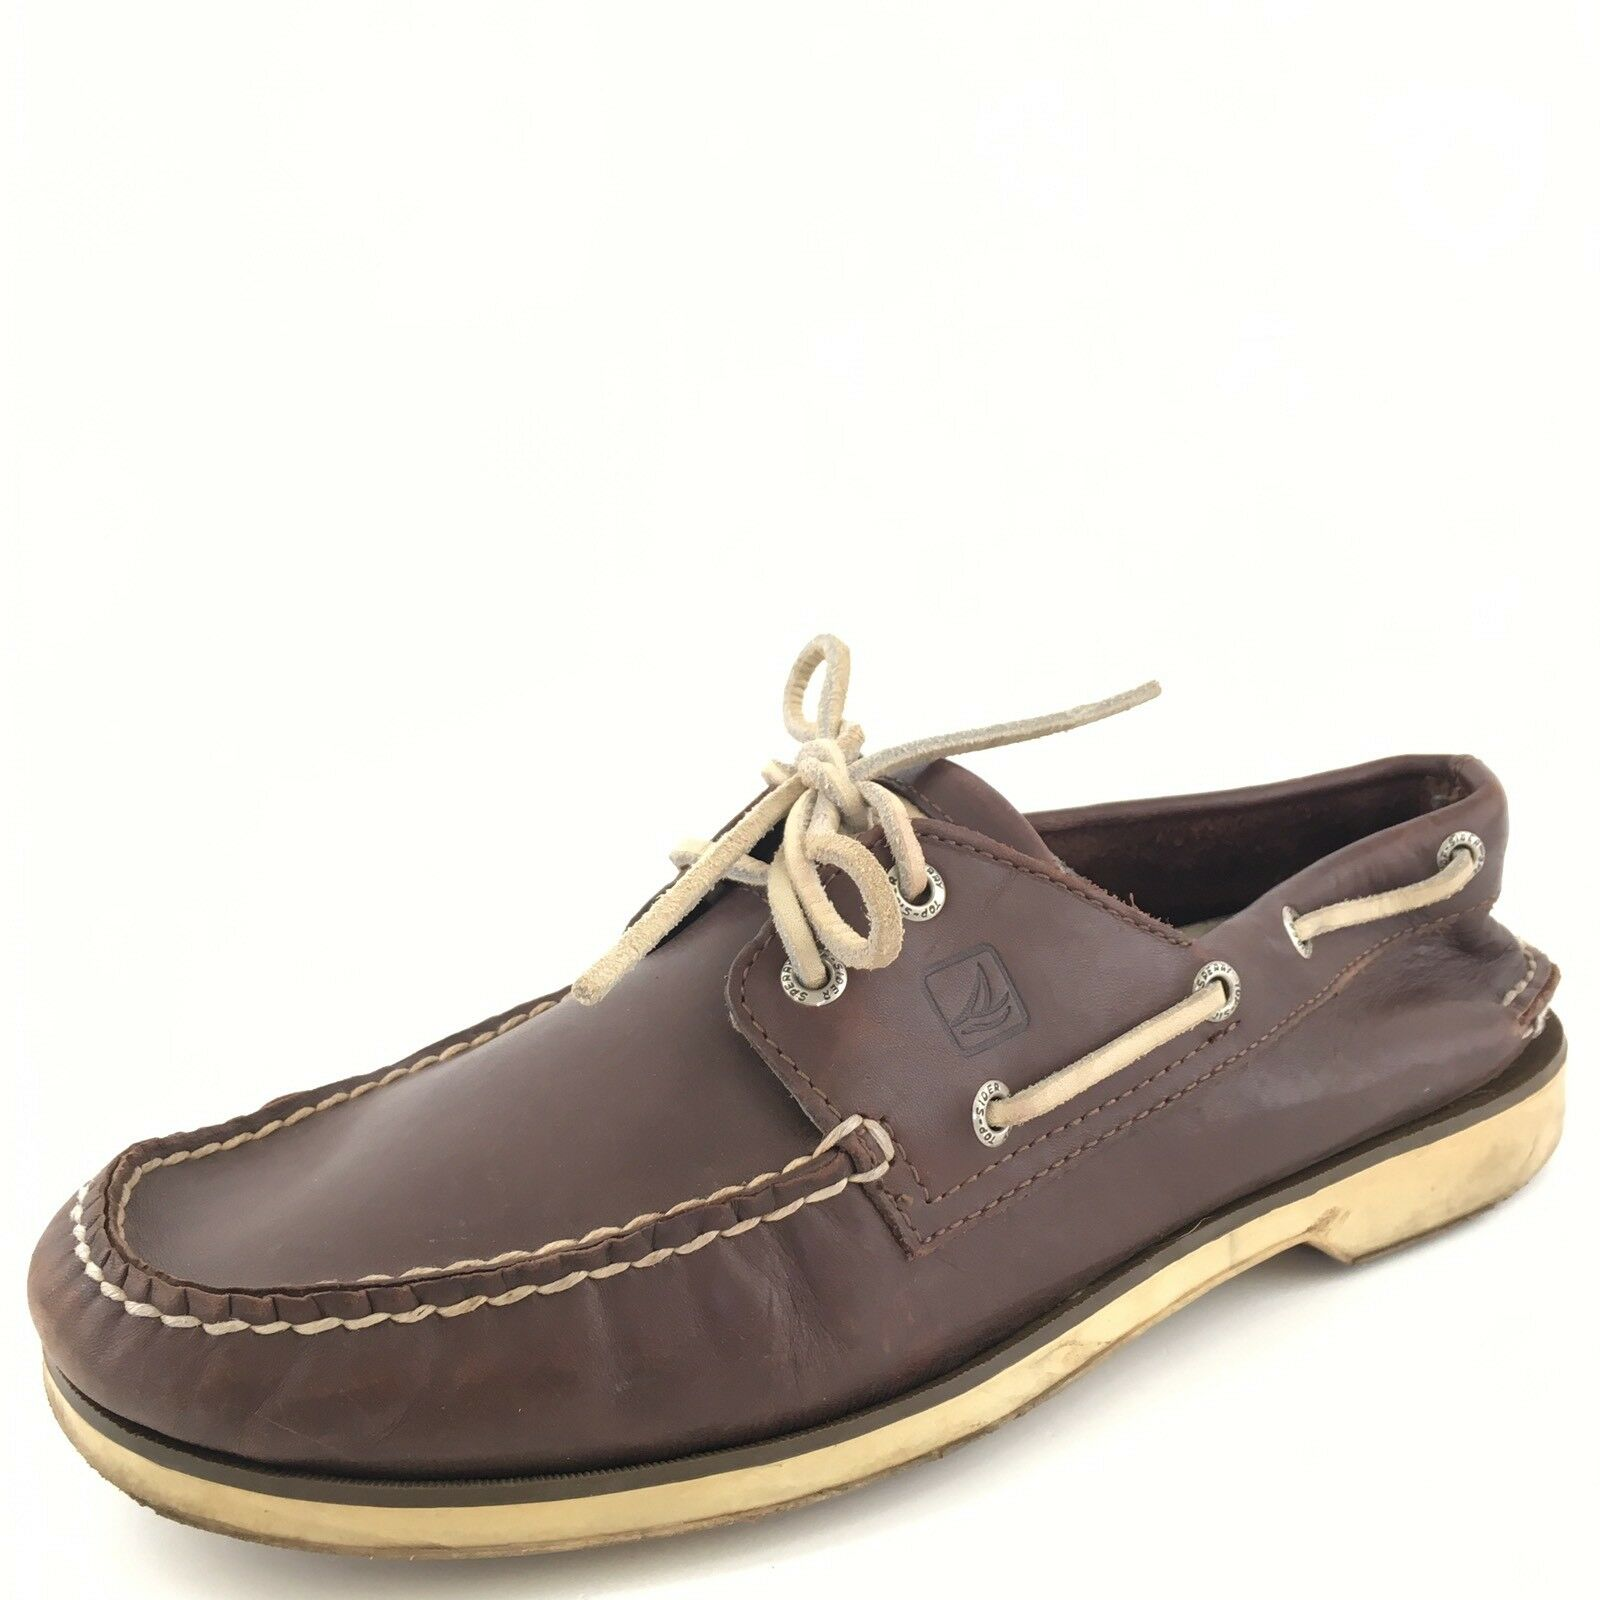 Sperry Top-Sider Blue Point Brown Leather Casual Boat Shoes Men's Size 10 M*